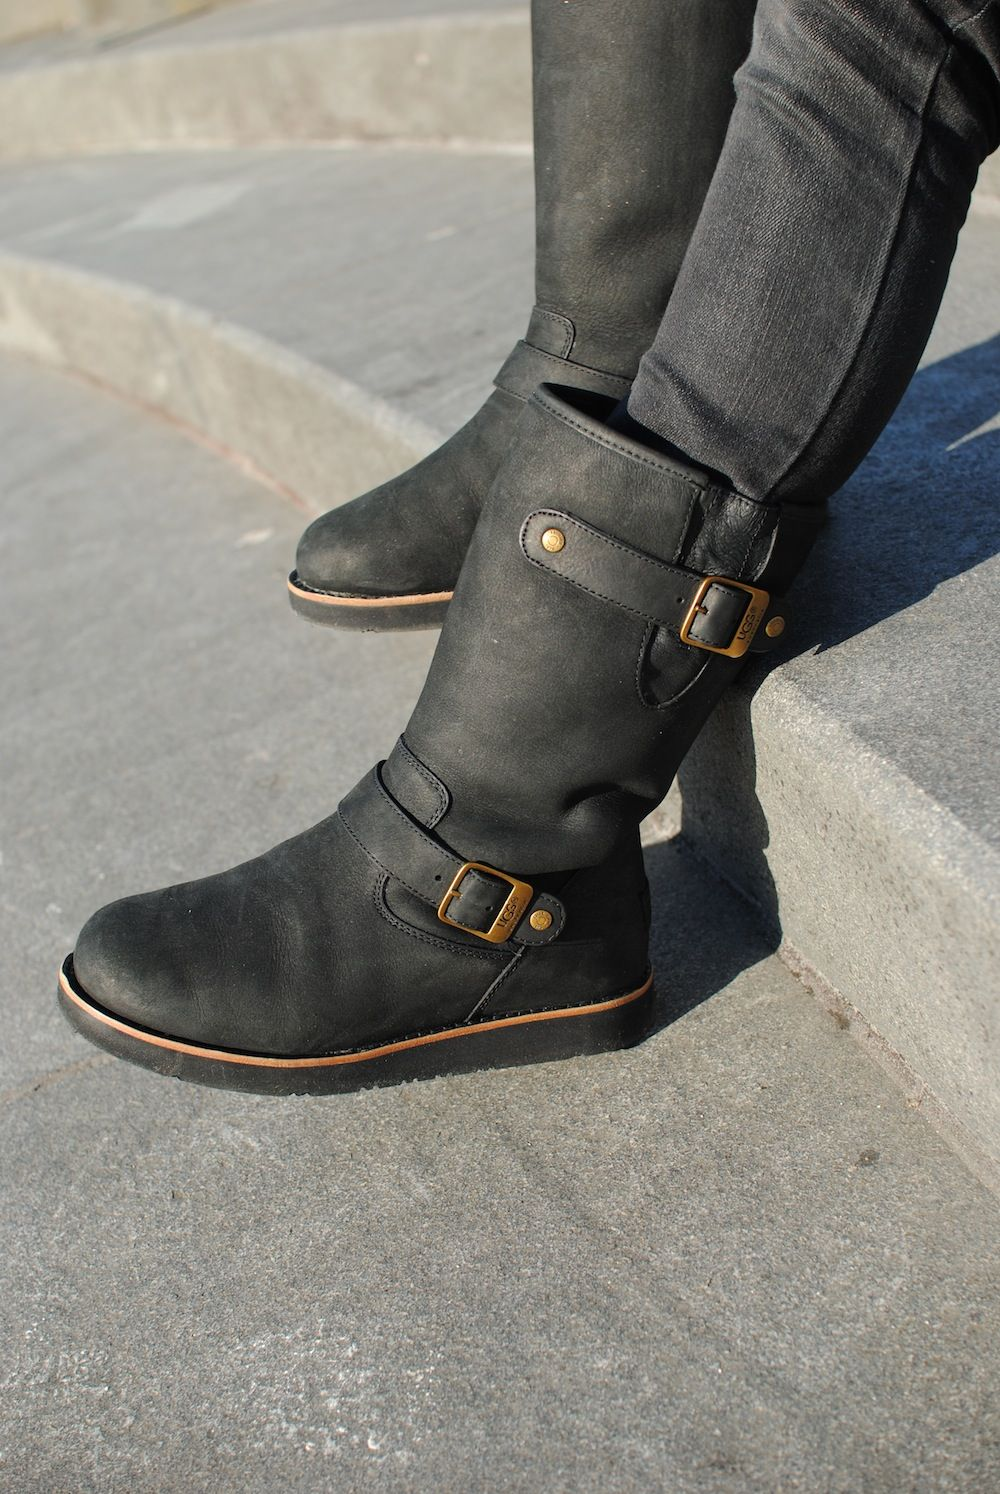 UGG Australia's motorcycle inspired winter boot for women - the Kensington